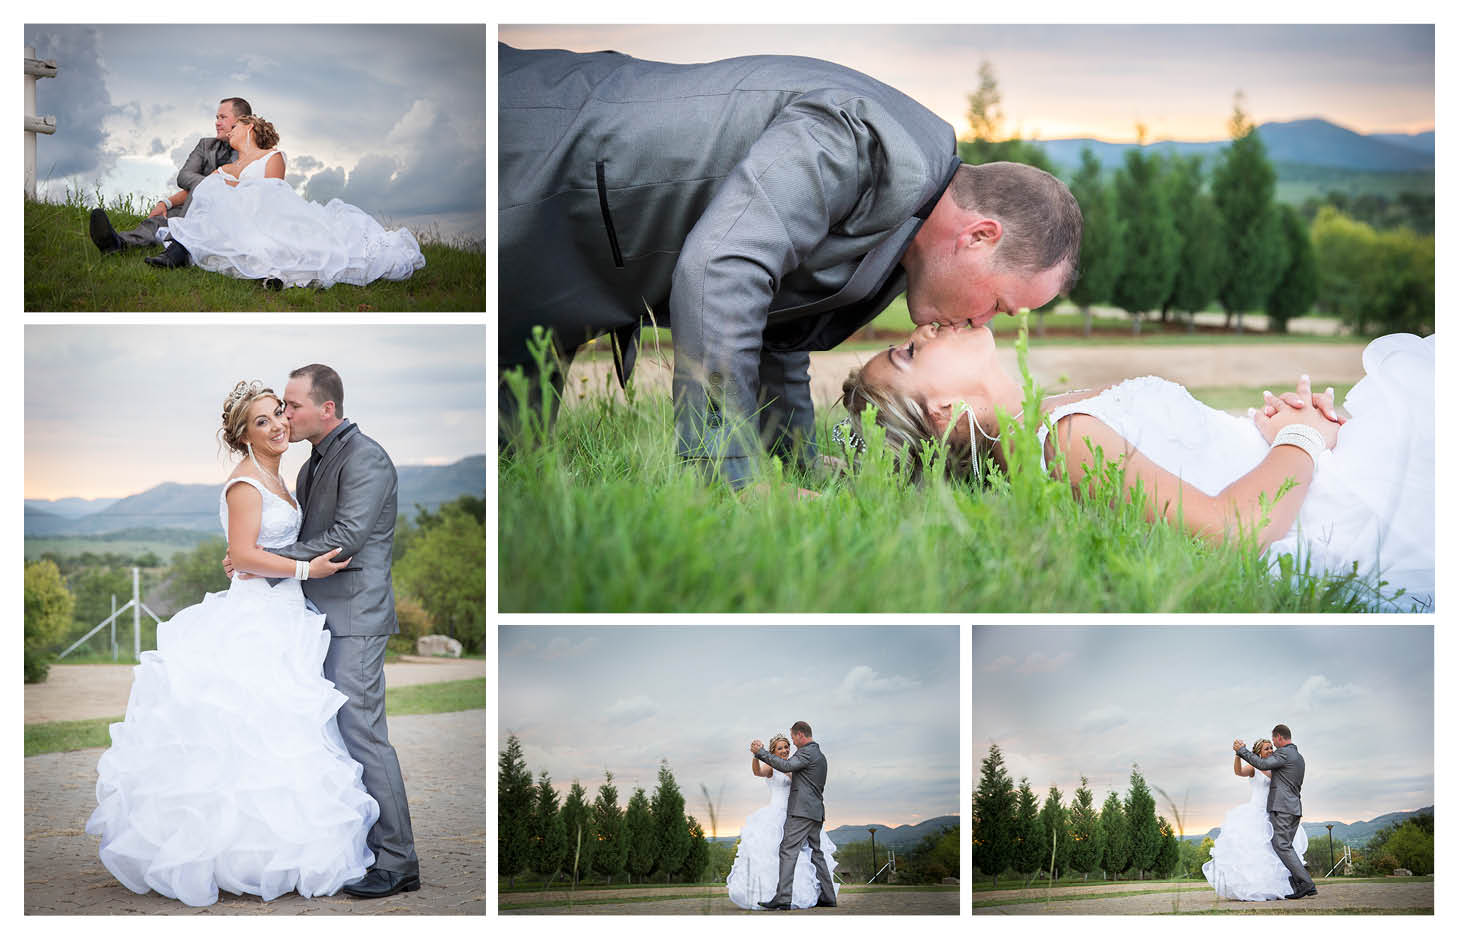 bride and groom photography with sunset,magalies mountain range and trees in background at La WiiDA Lodge